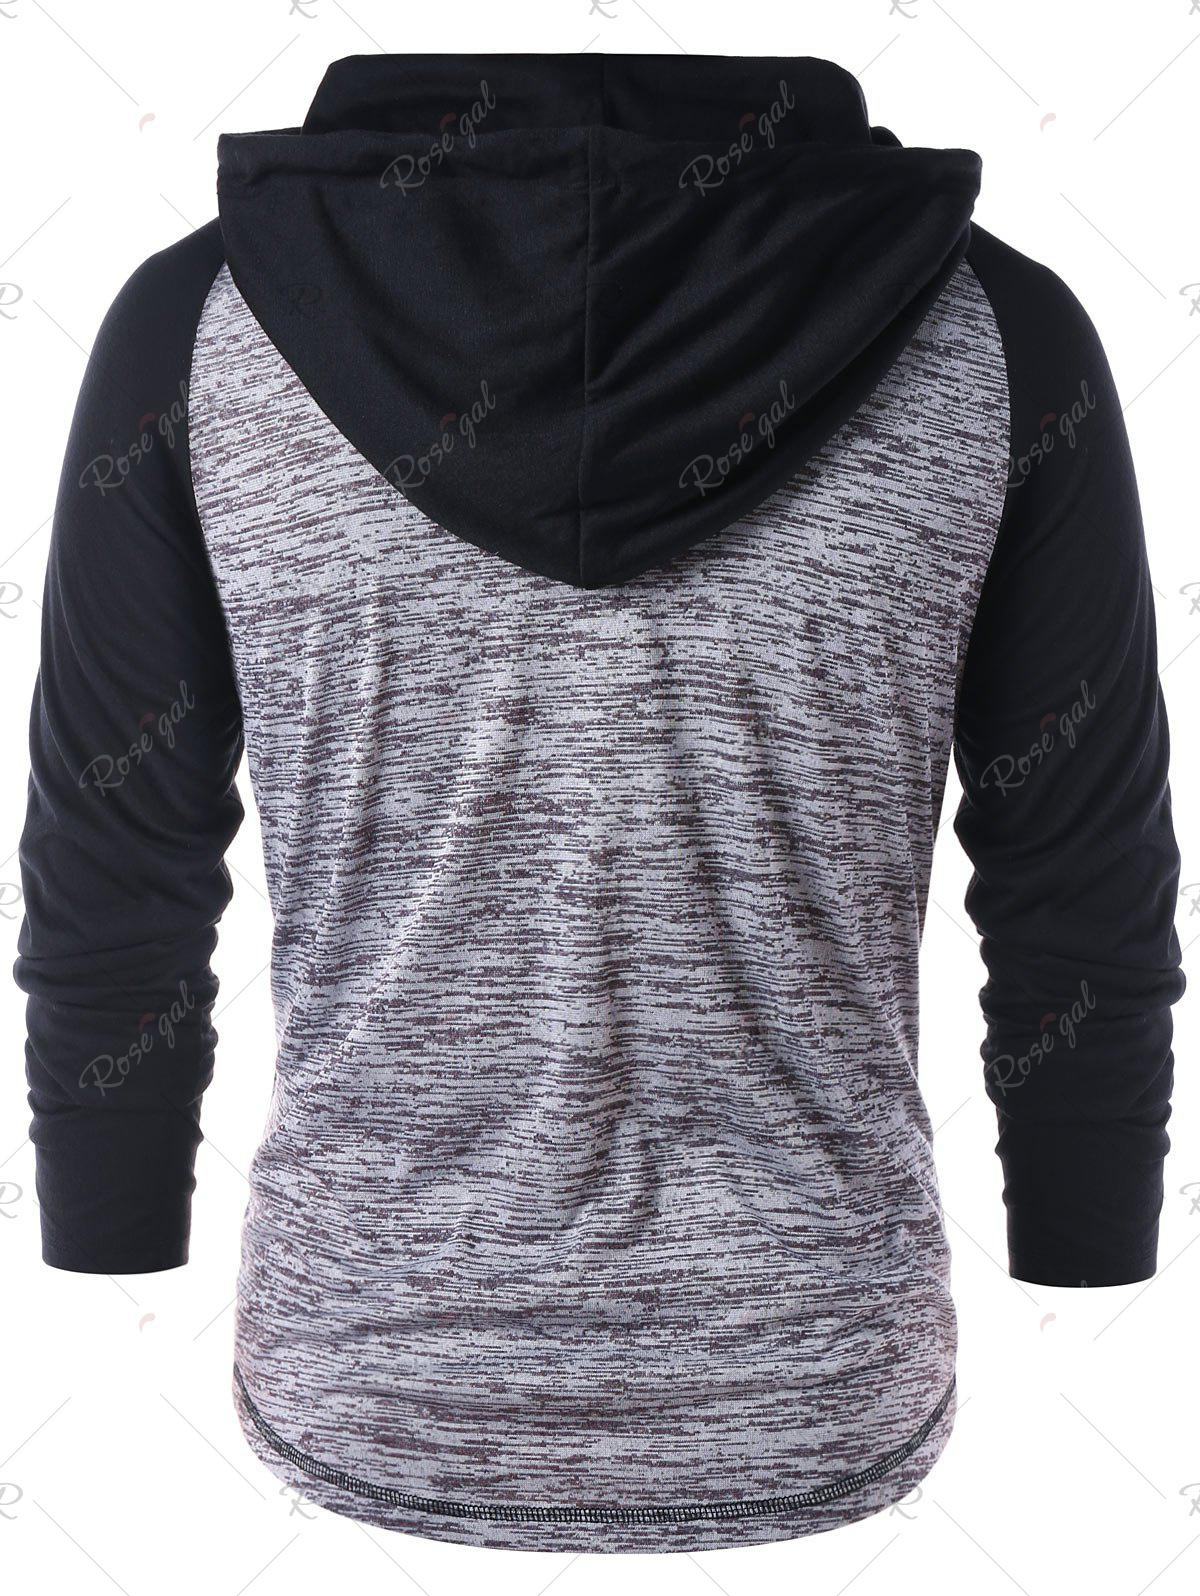 https://www.rosegal.com/mens-hoodies-sweatshirts/raglan-sleeve-color-block-hoodie-2308036.html?lkid=16127505